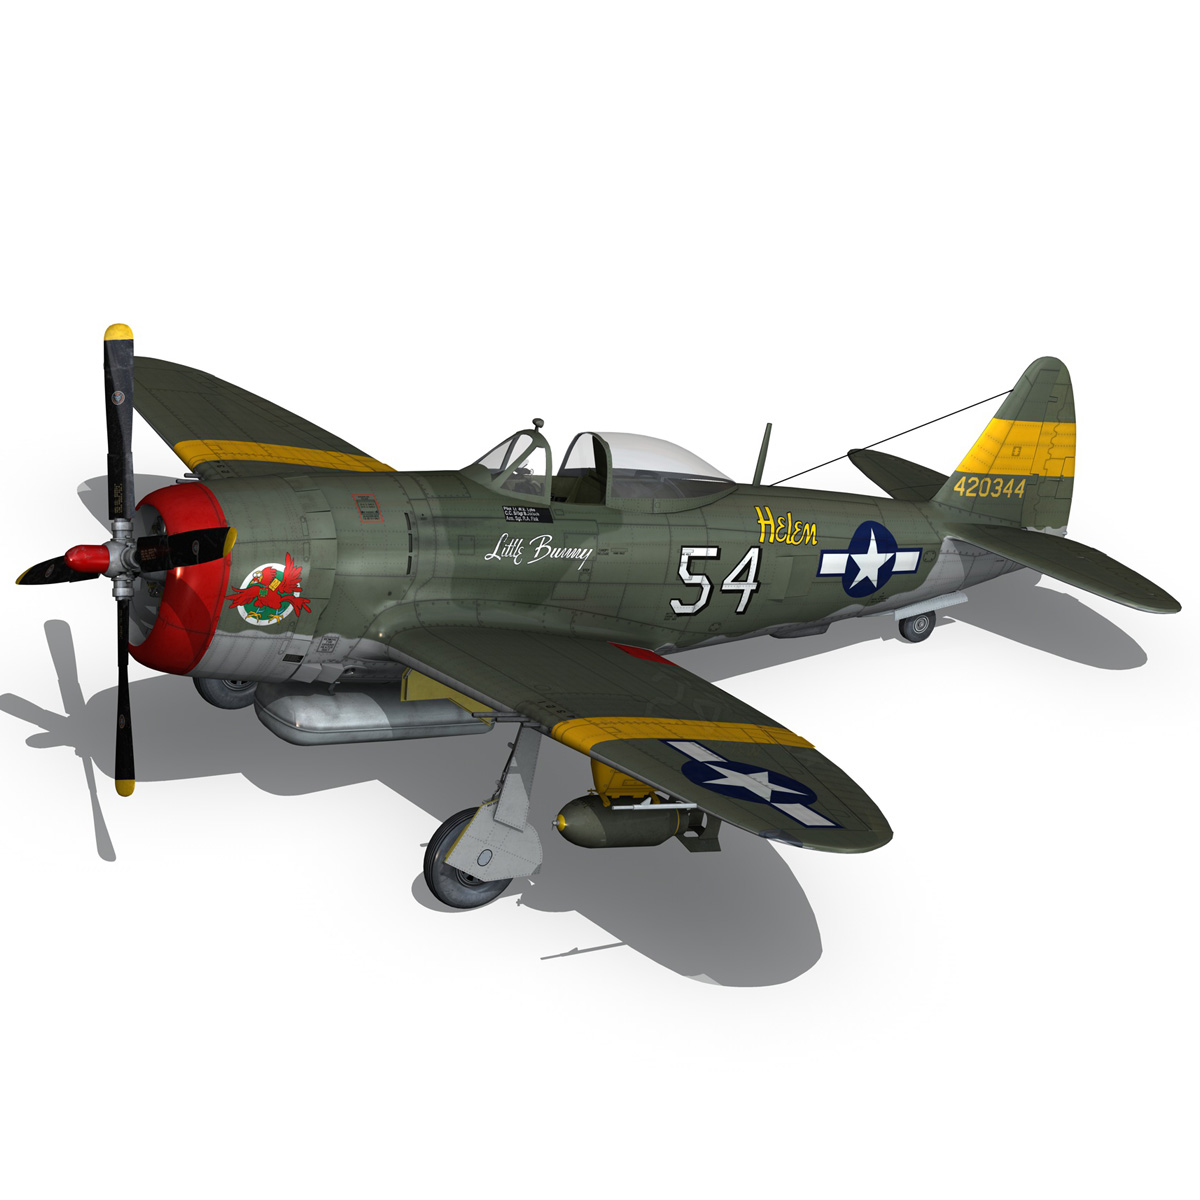 republic p-47d thunderbolt – little bunny 3d model fbx c4d lwo obj 274228